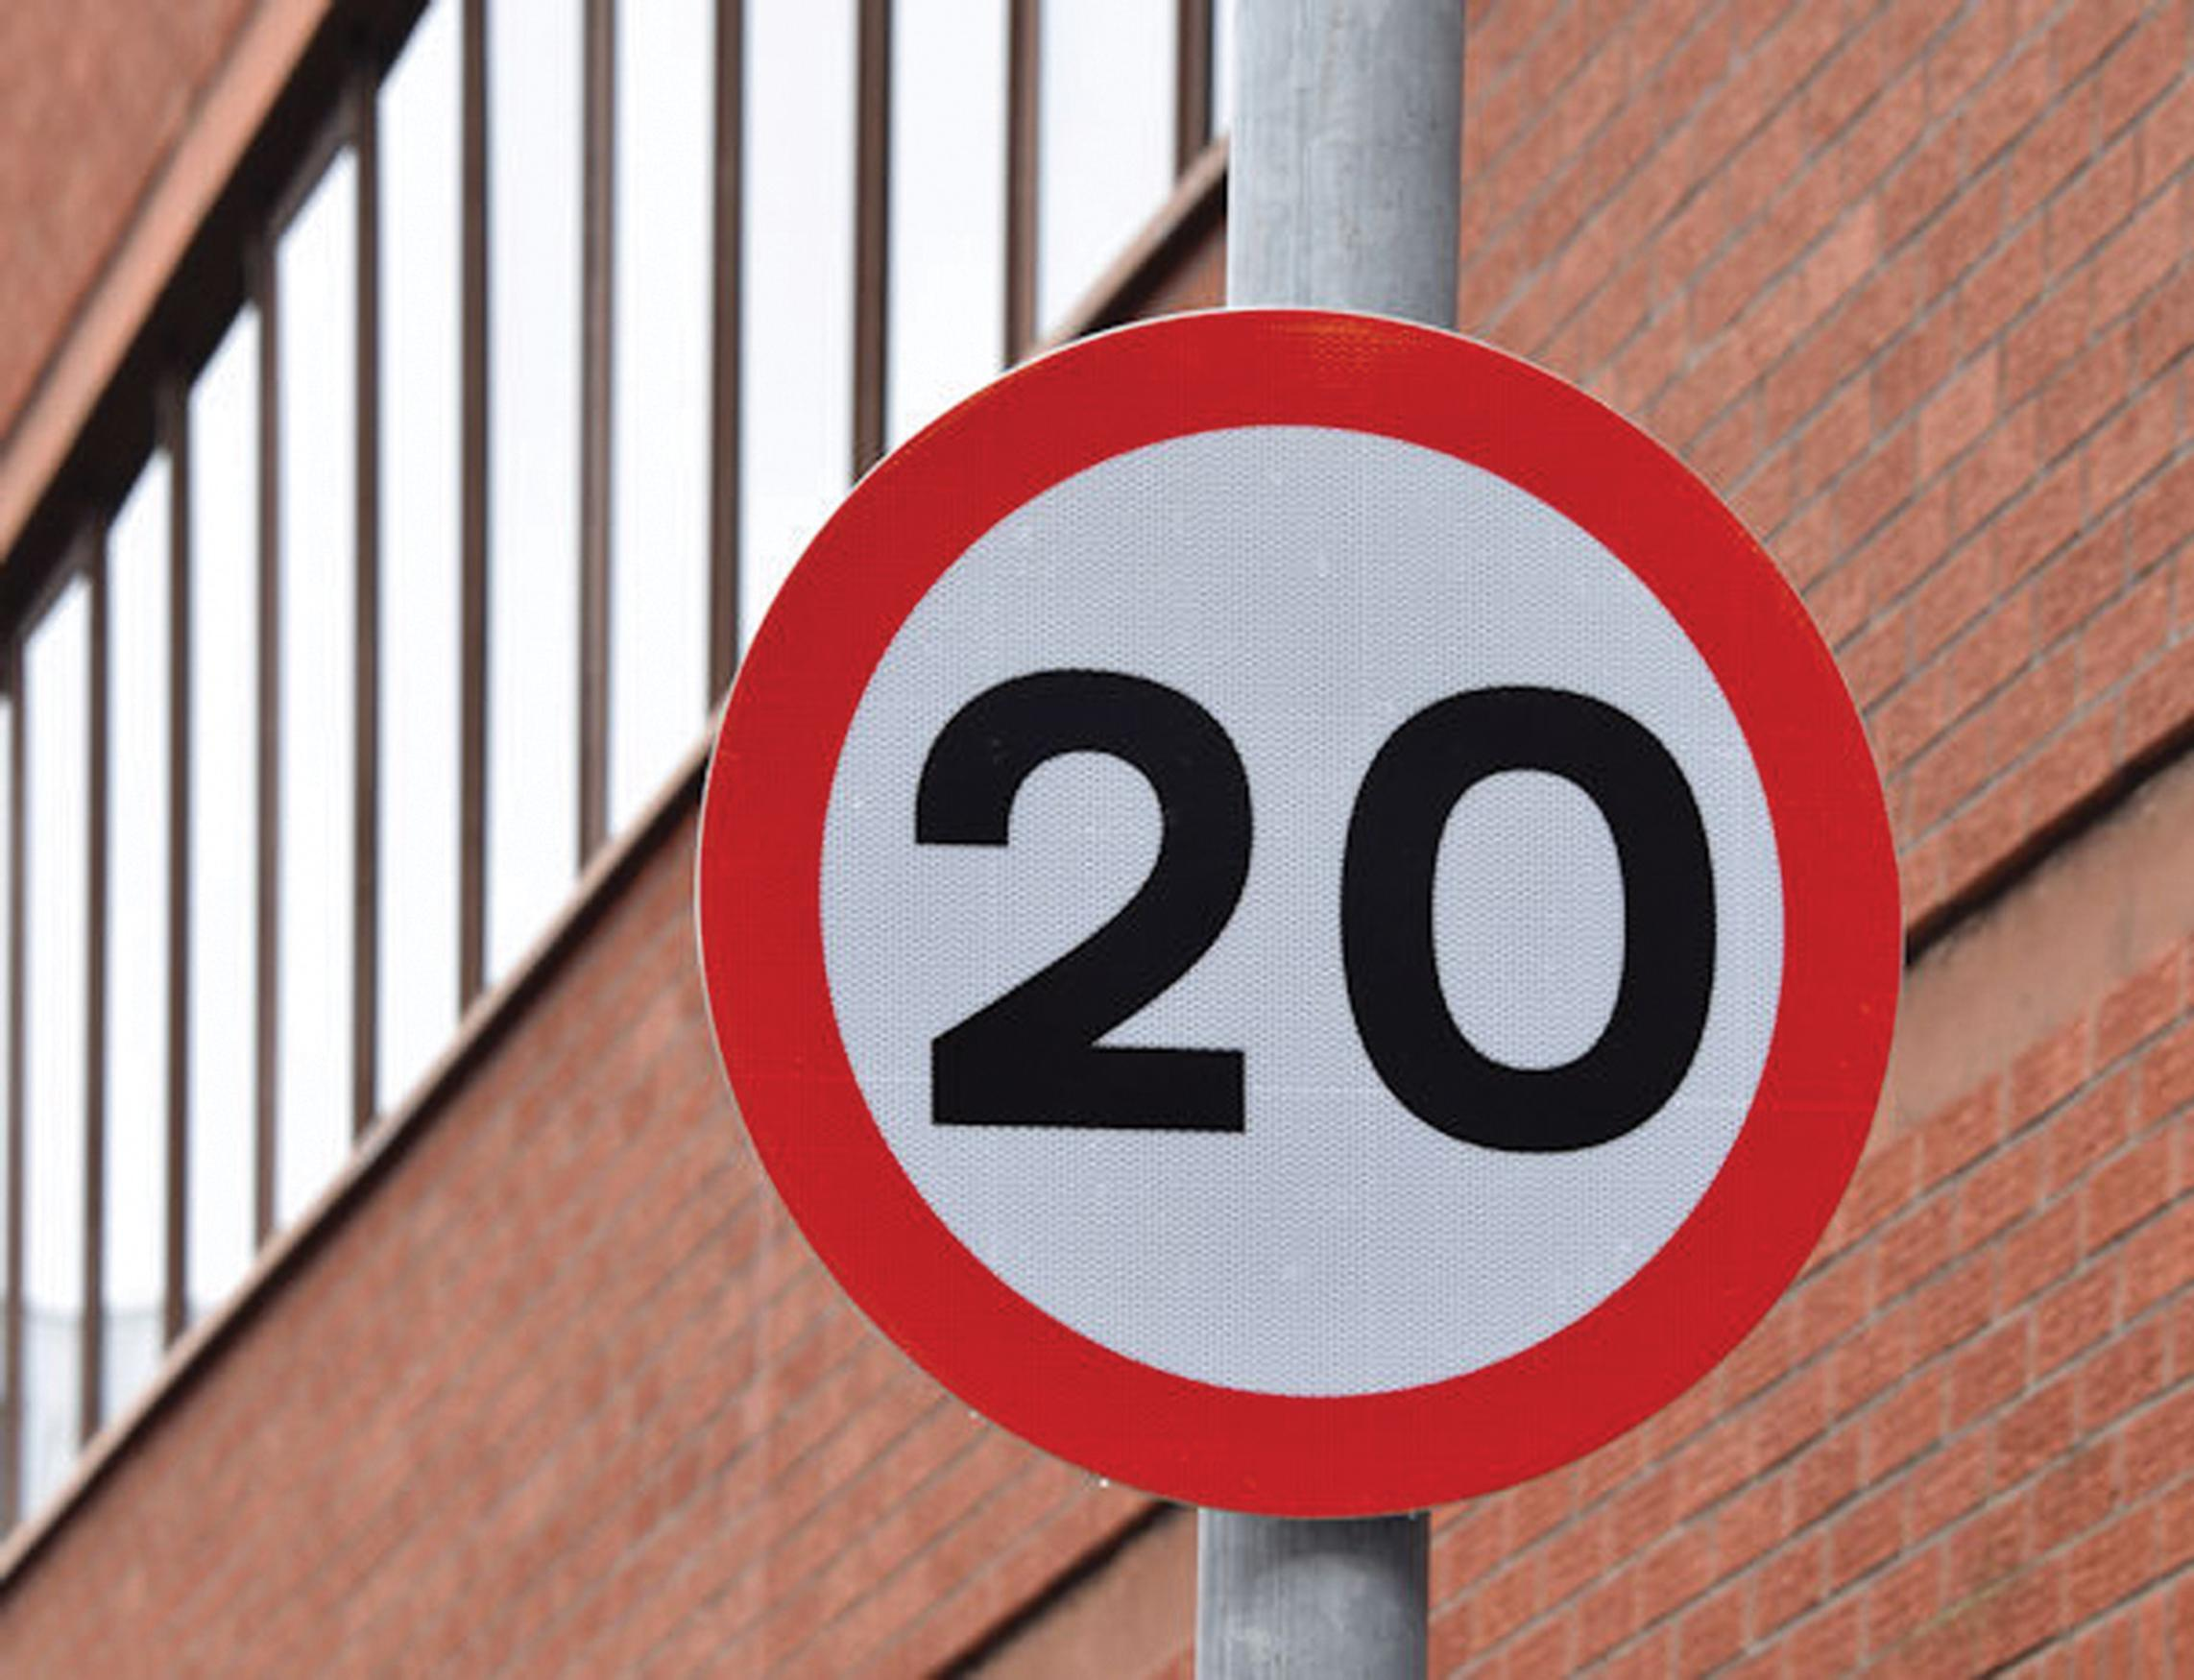 Driver injuries fall in council 20mph areas